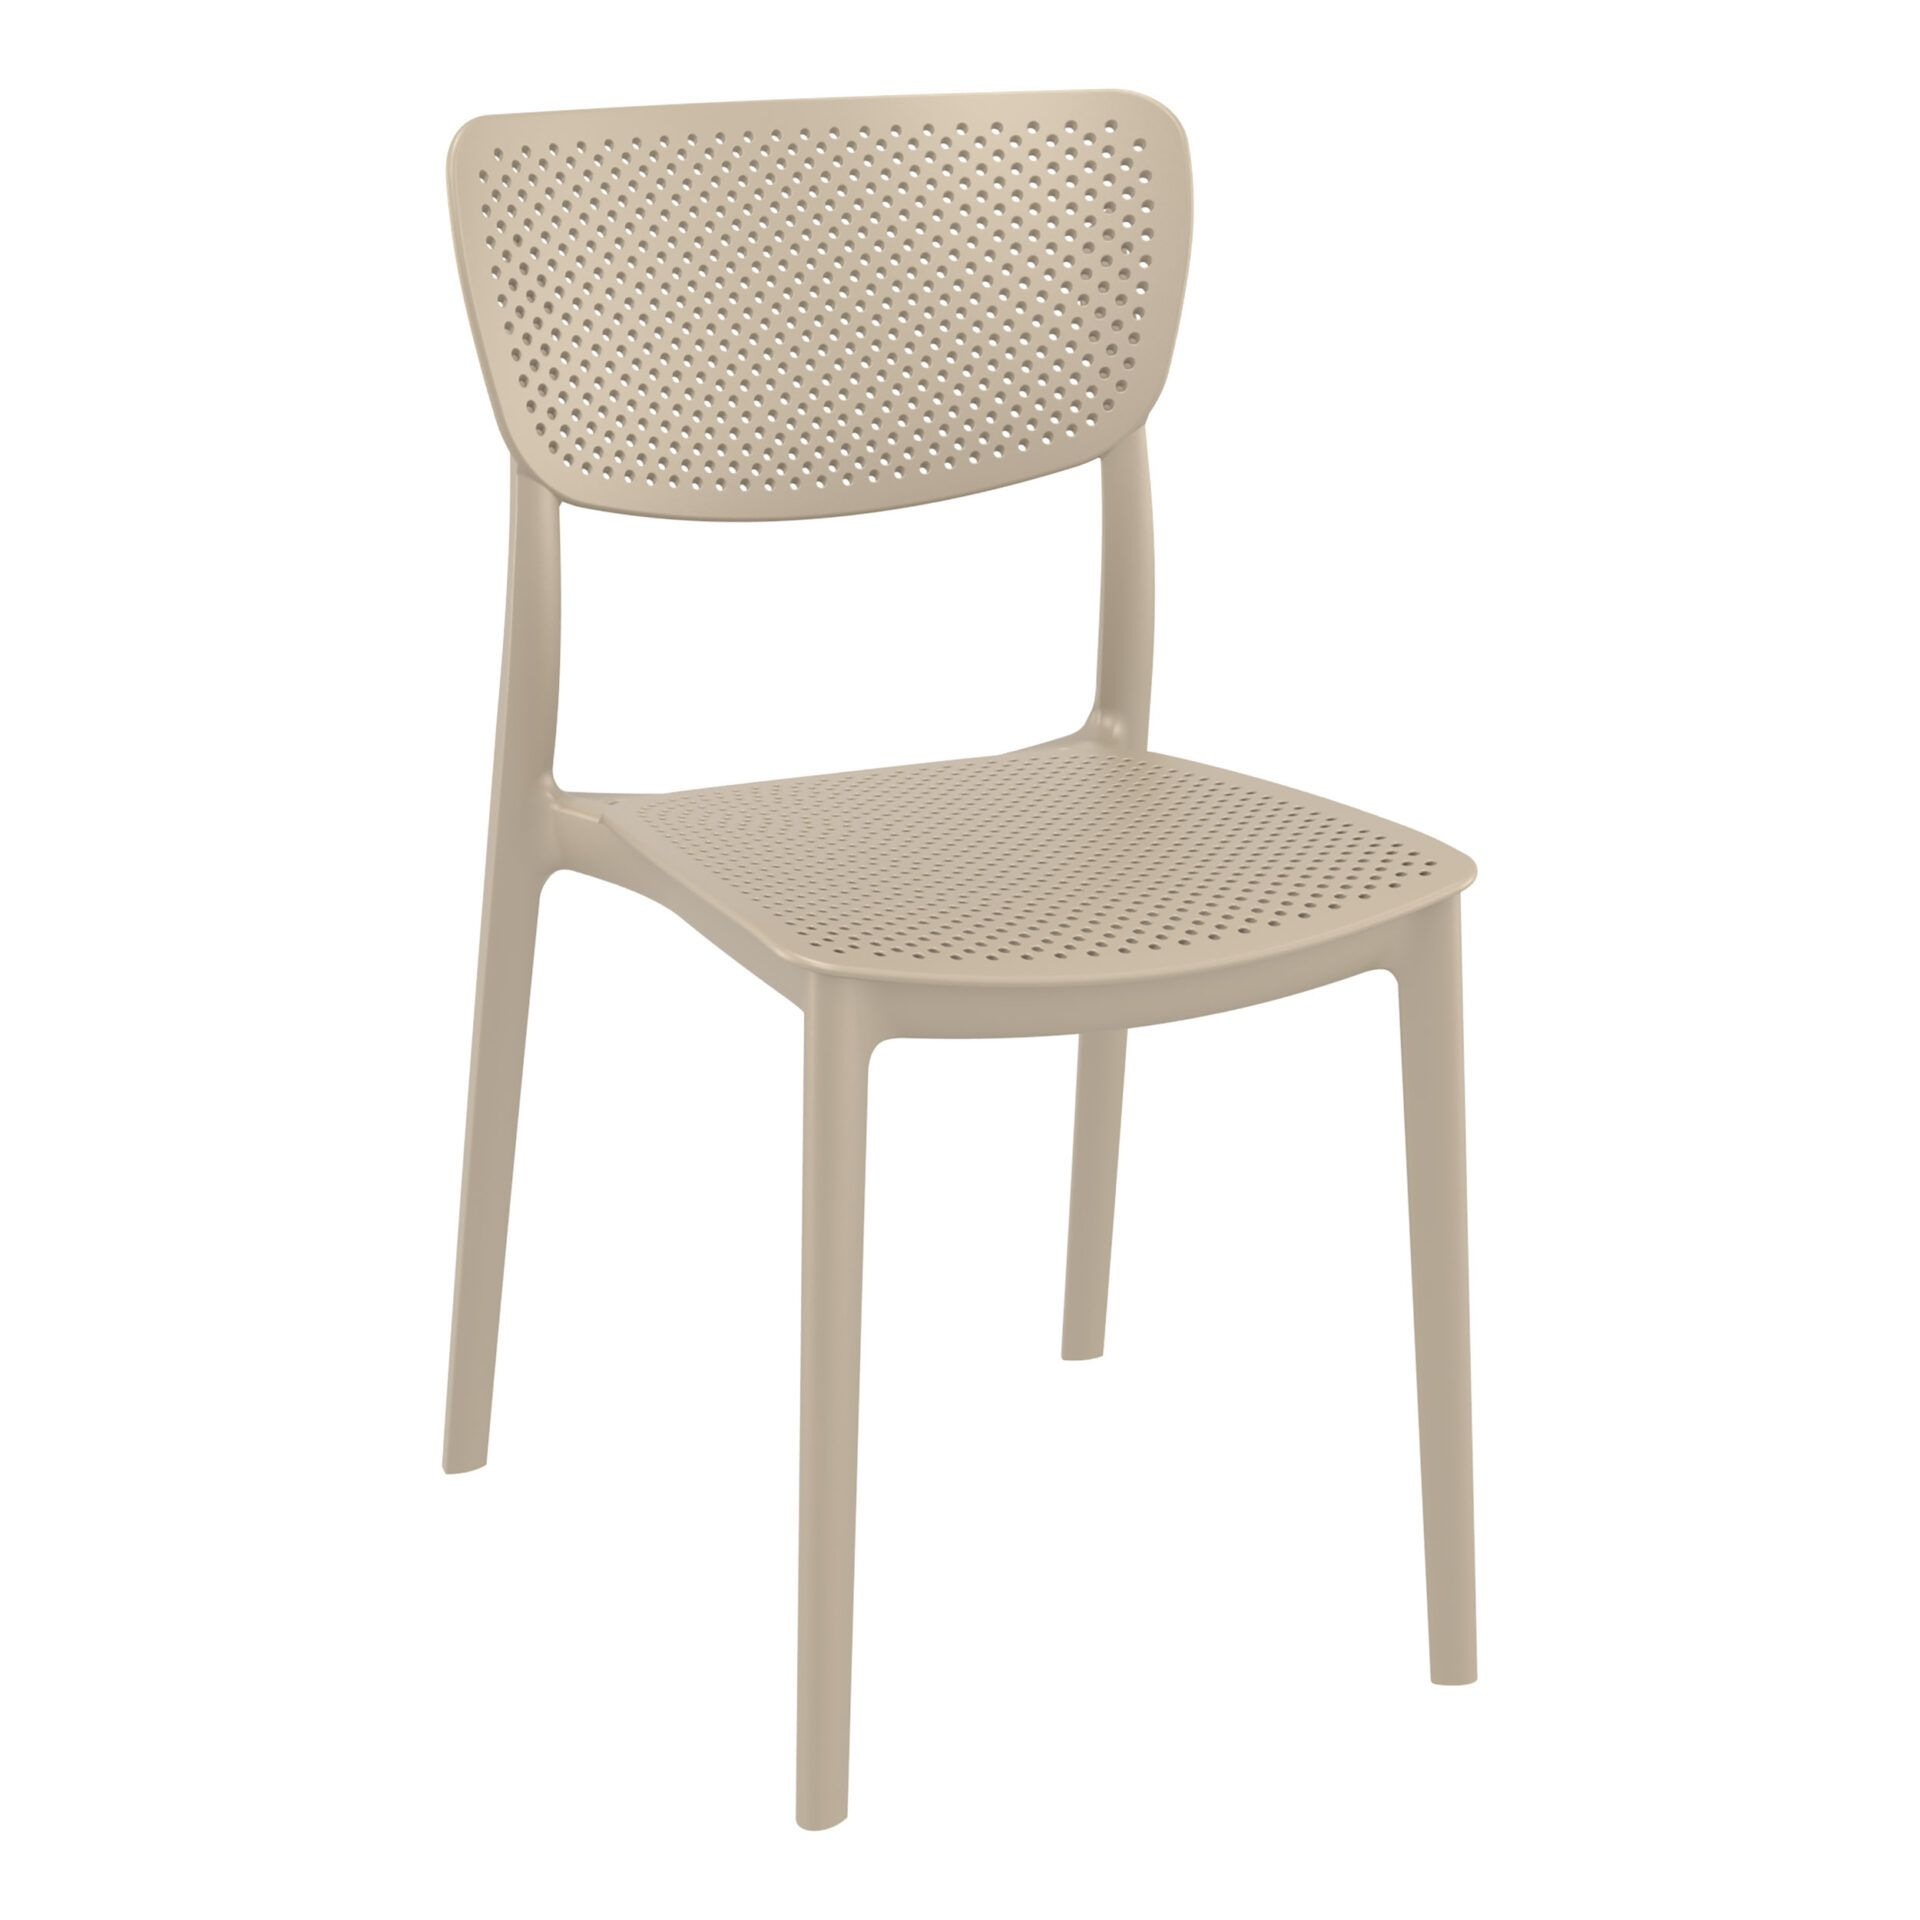 polypropylene hospitality seating lucy chair taupe front side